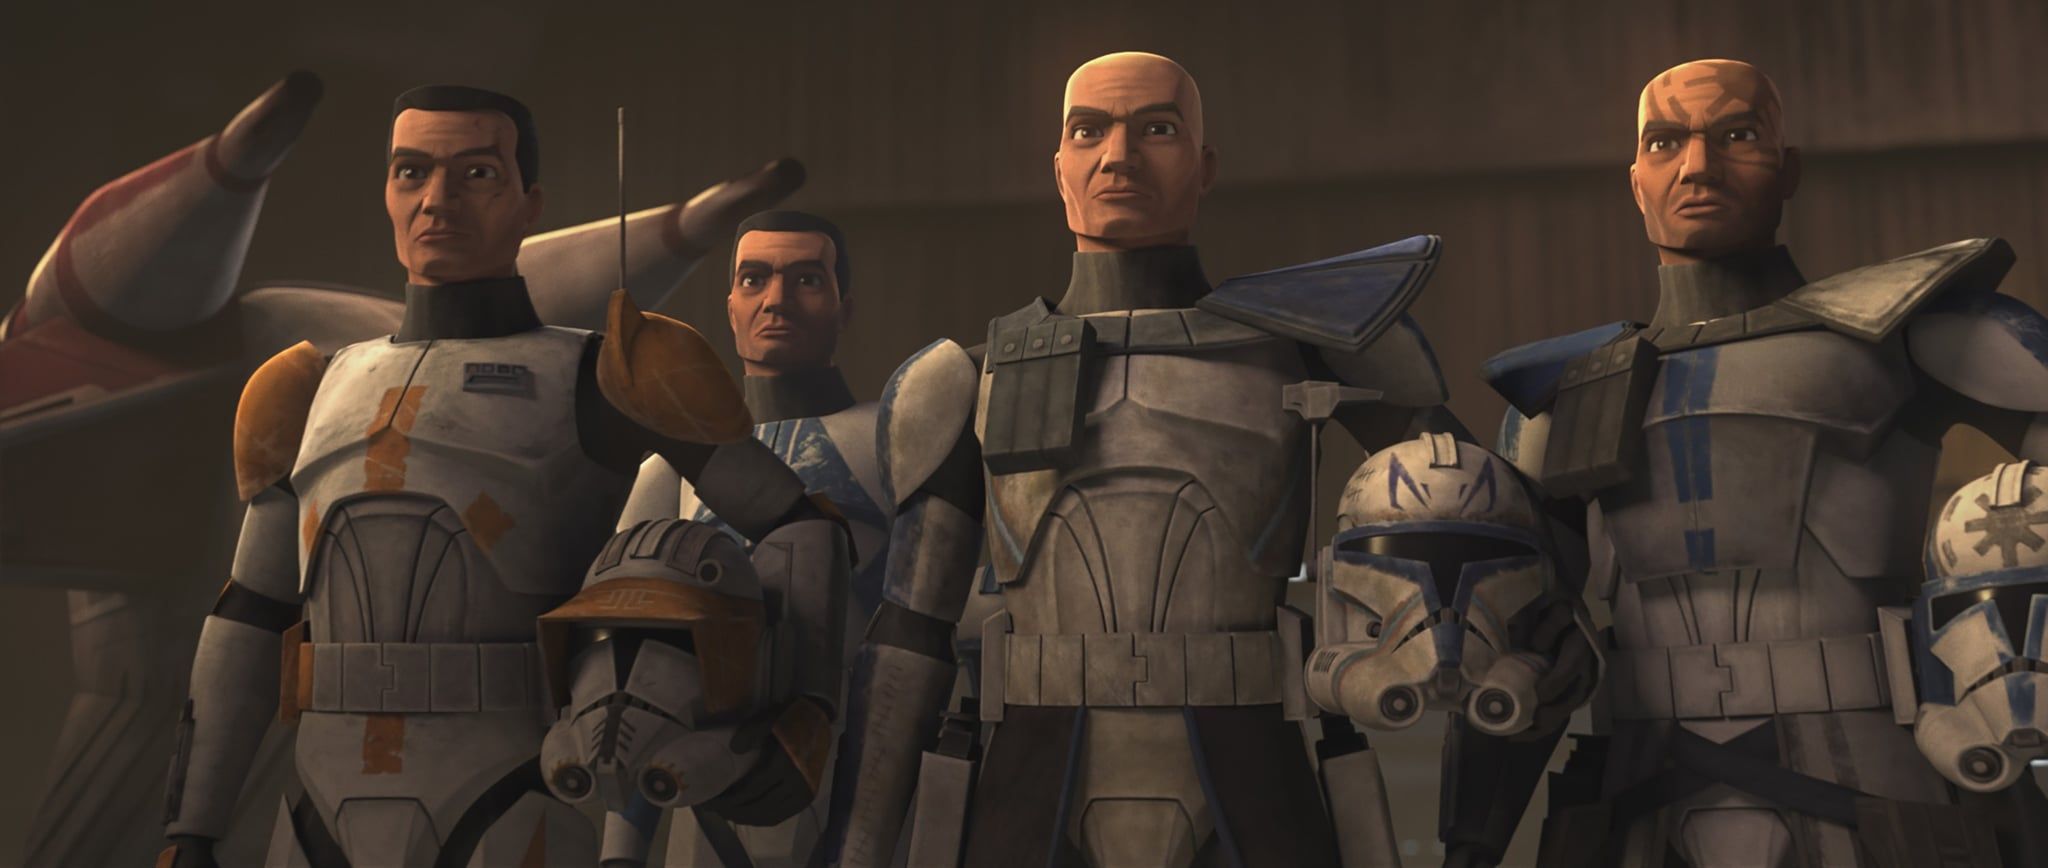 STAR WARS: THE CLONE WARS, Captain Res and the clones, The Bad Batch, (Season 7, ep. 701, aired Feb. 21, 2020). photo: Disney+ / Courtesy Everett Collection